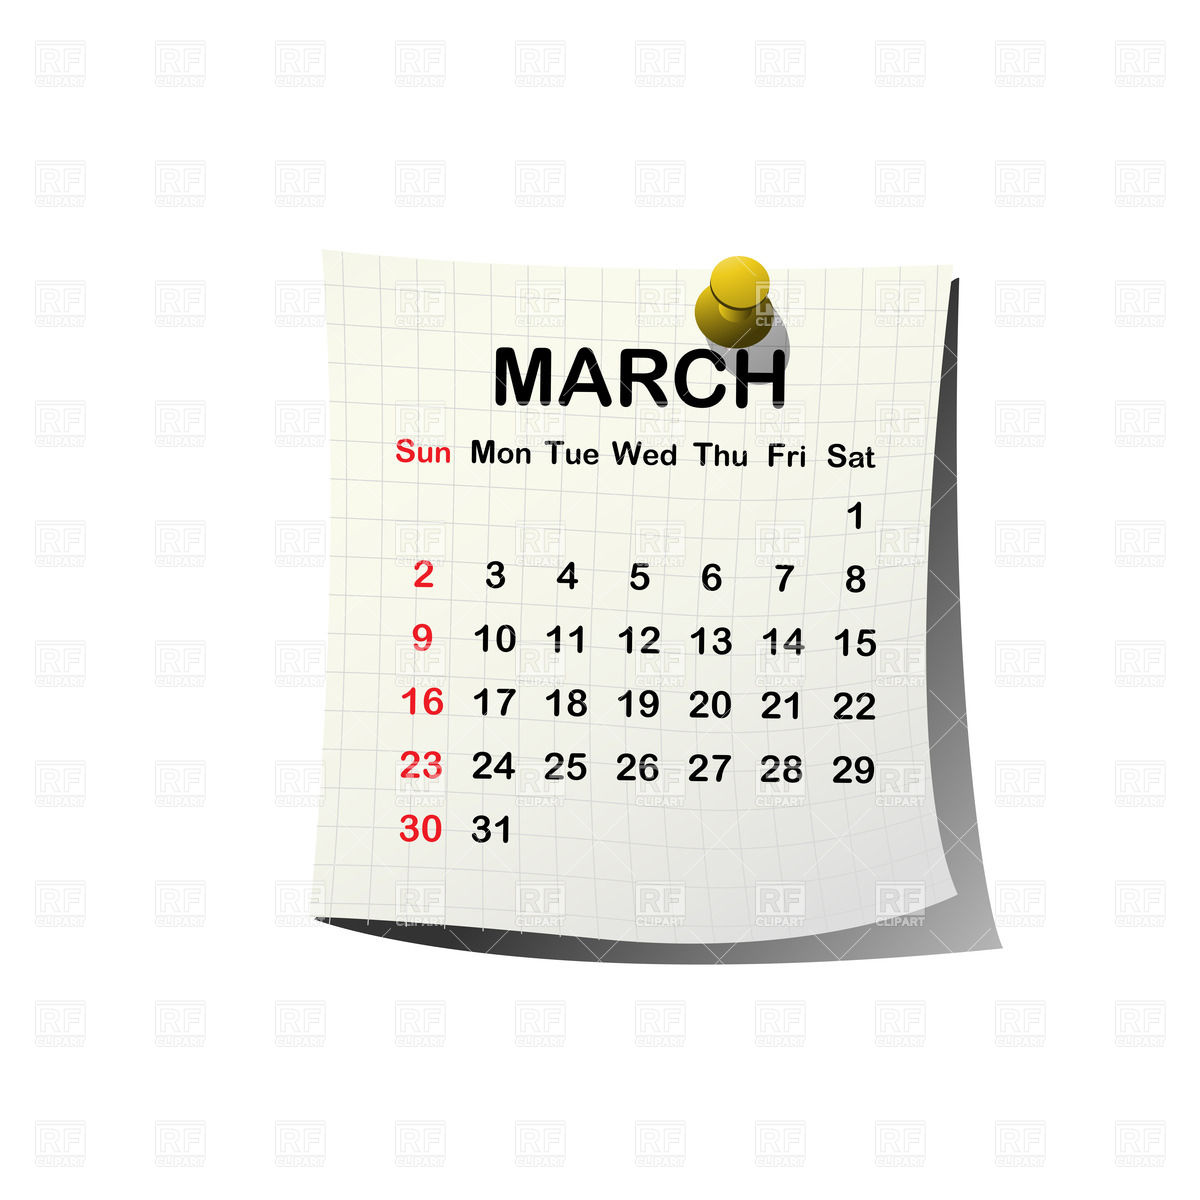 Calendar clipart march freeuse download March Calendar Clipart - Clipart Kid freeuse download